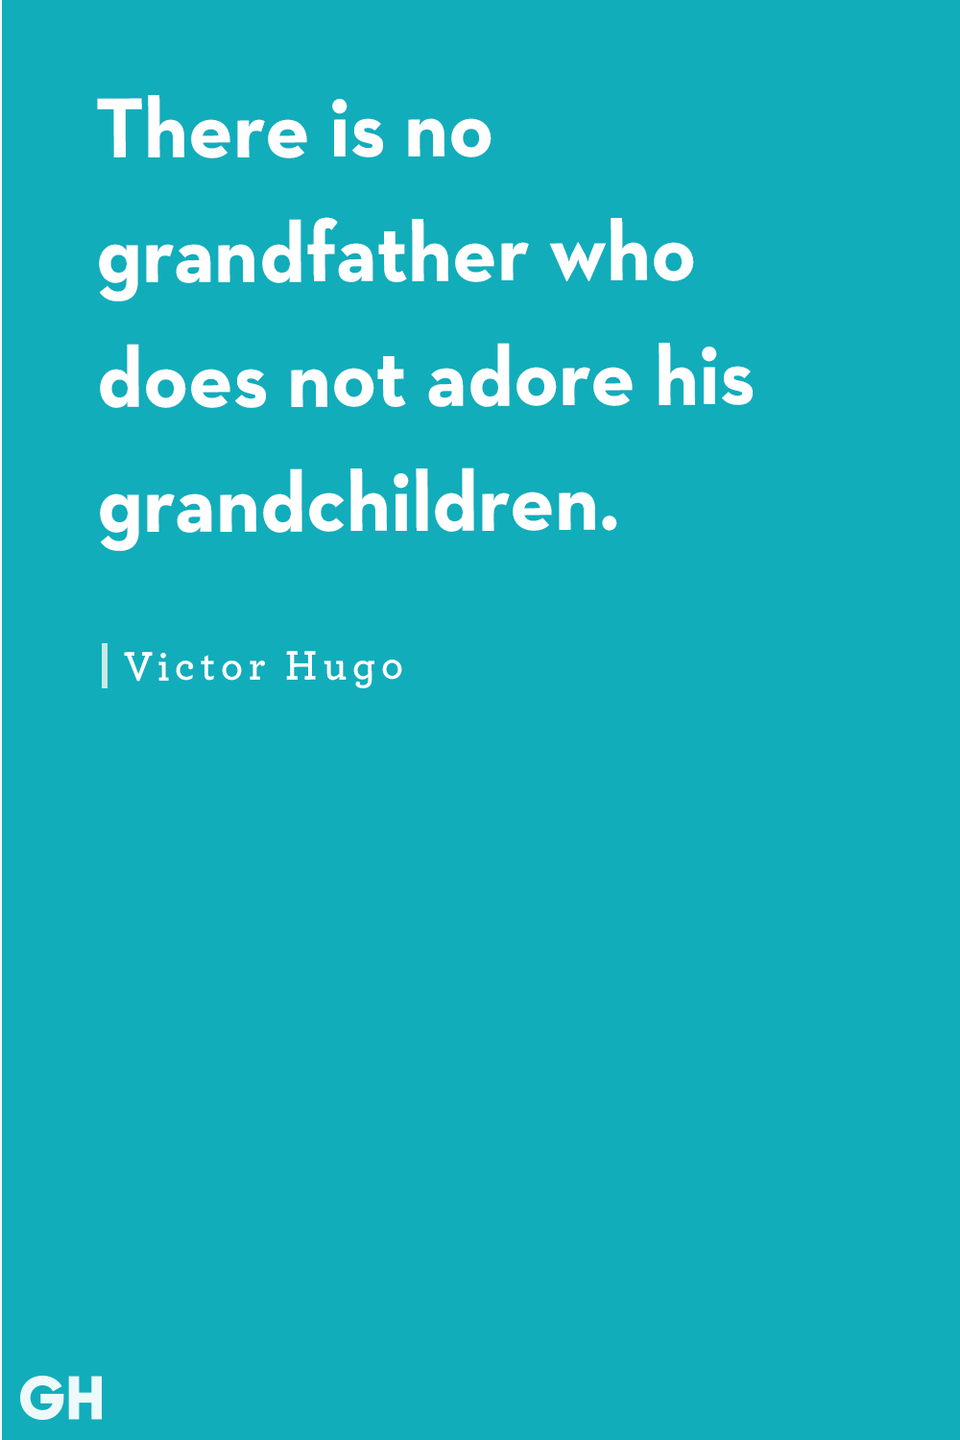 <p>There is no grandfather who does not adore his grandchildren.</p>